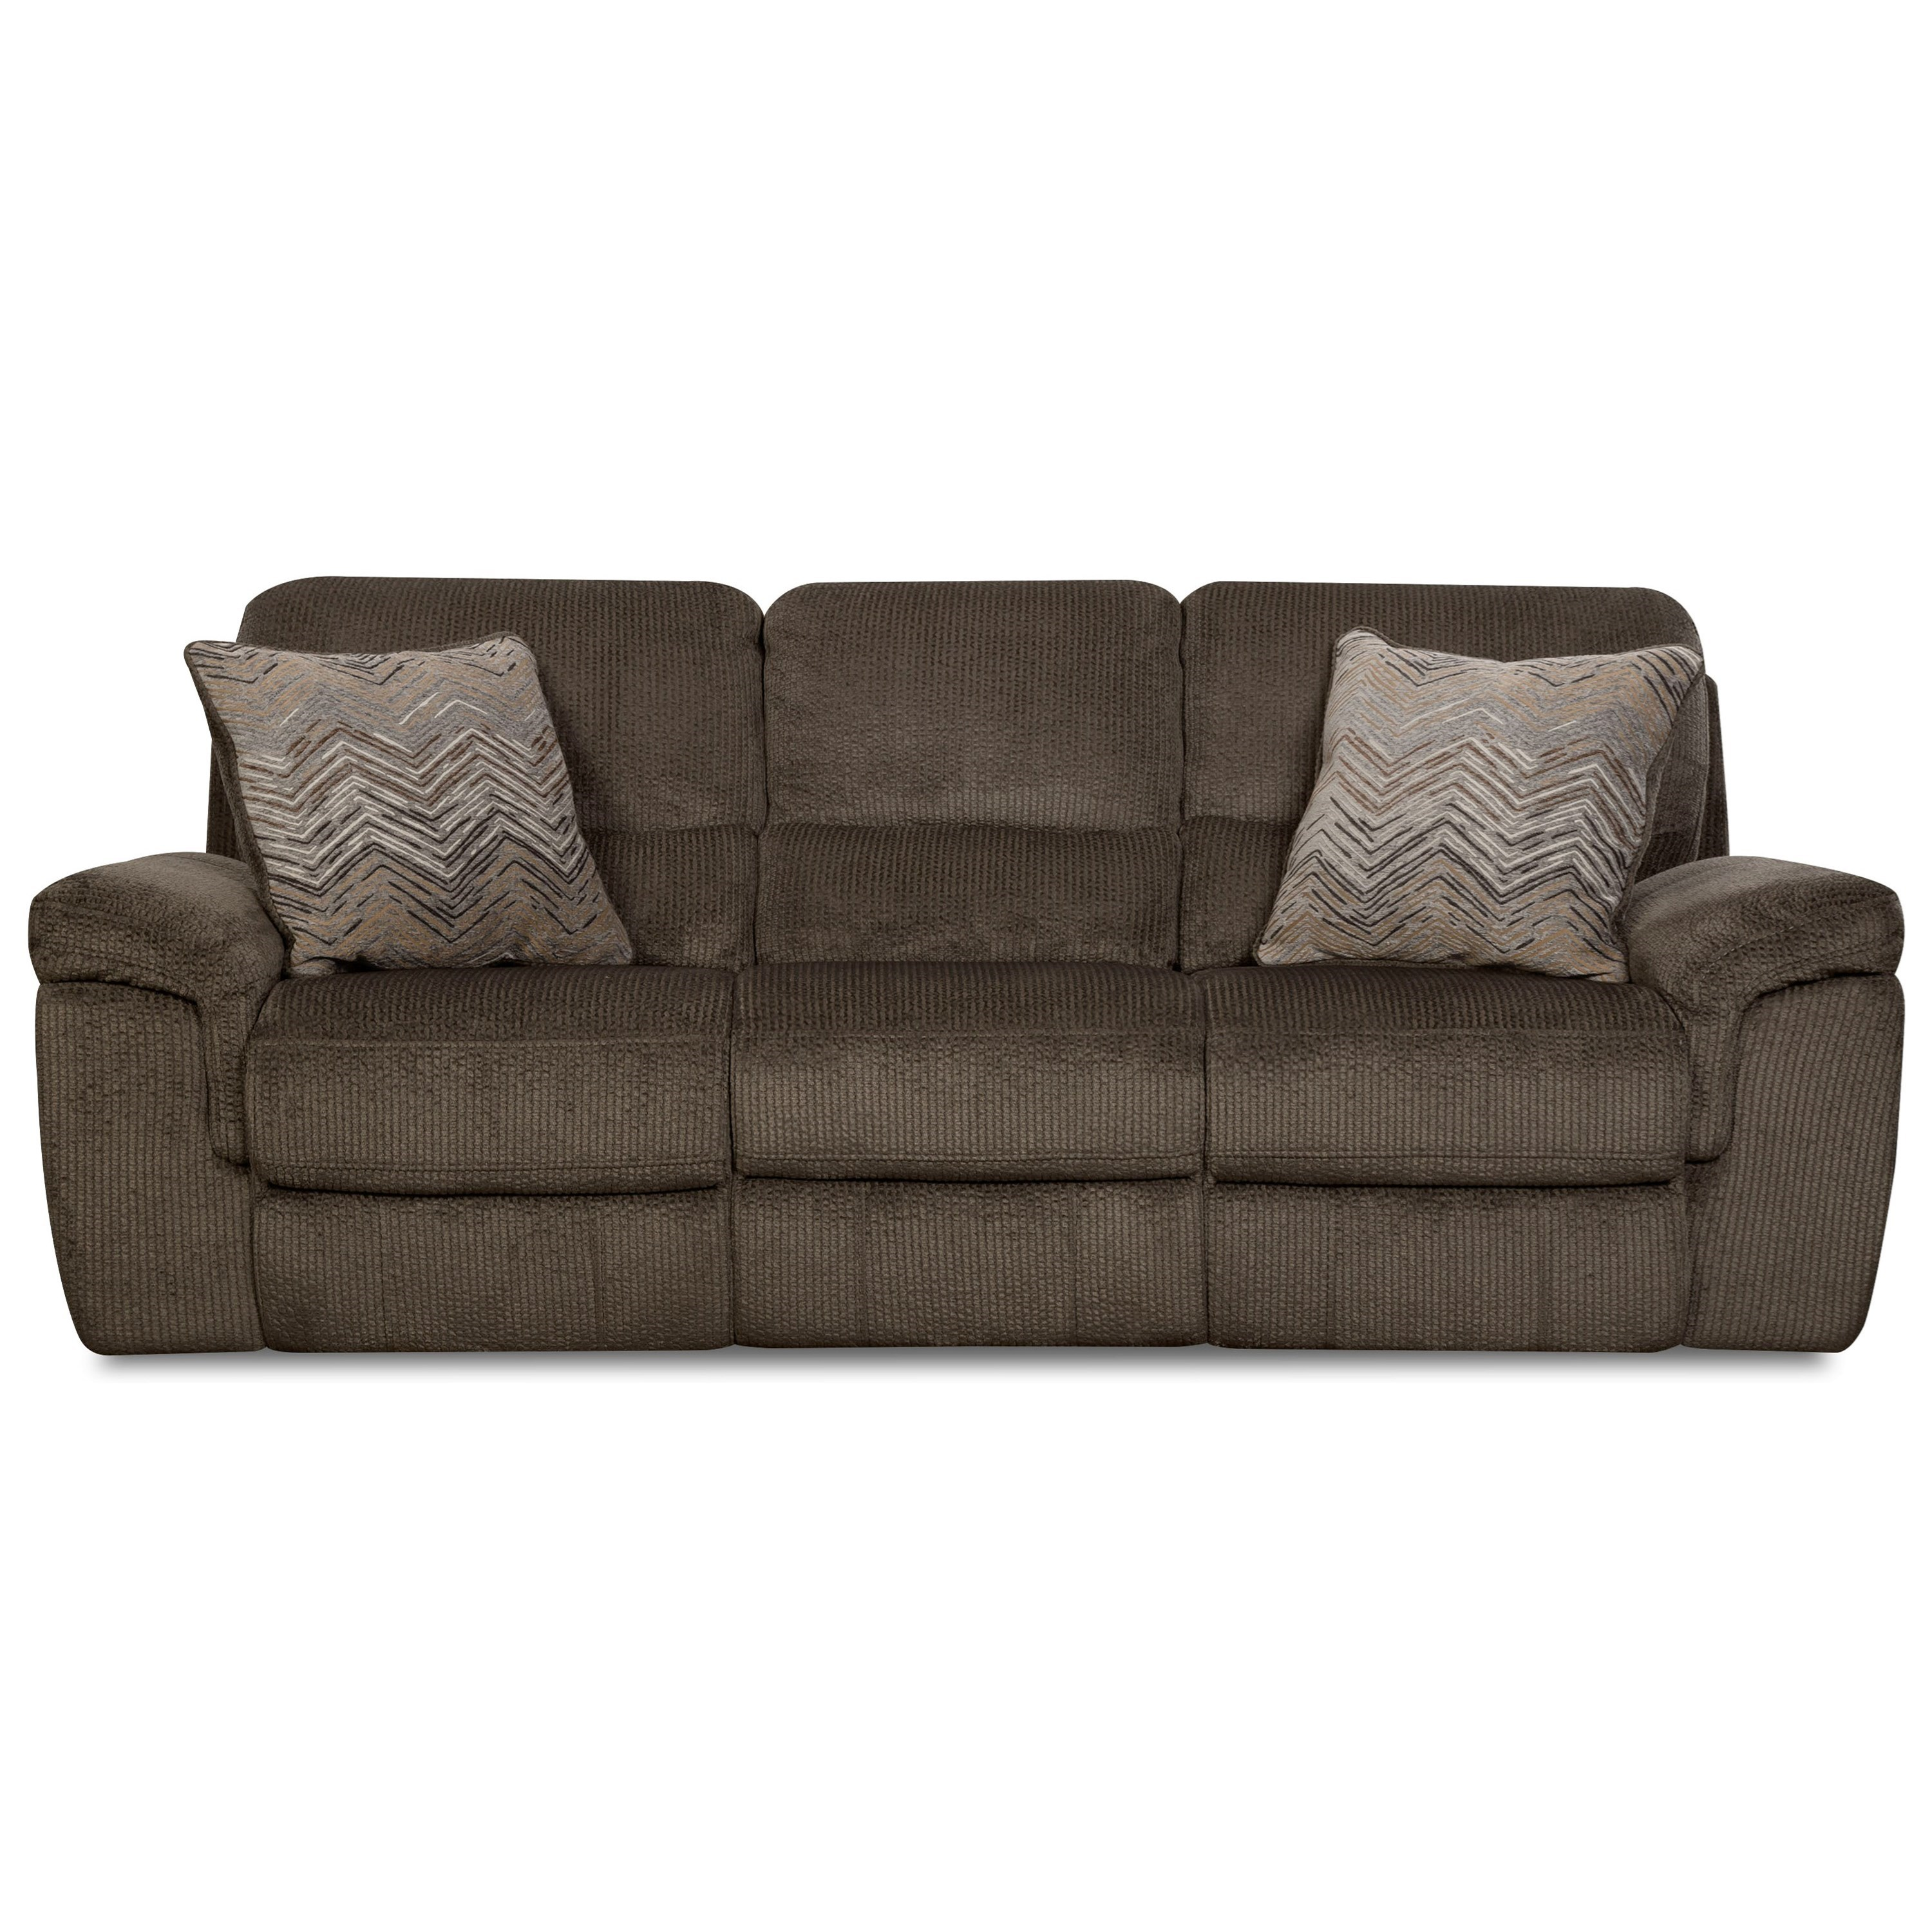 Corinthian 35002 Reclining Sofa - Item Number: 35001-30-Made-Out-Chocolate